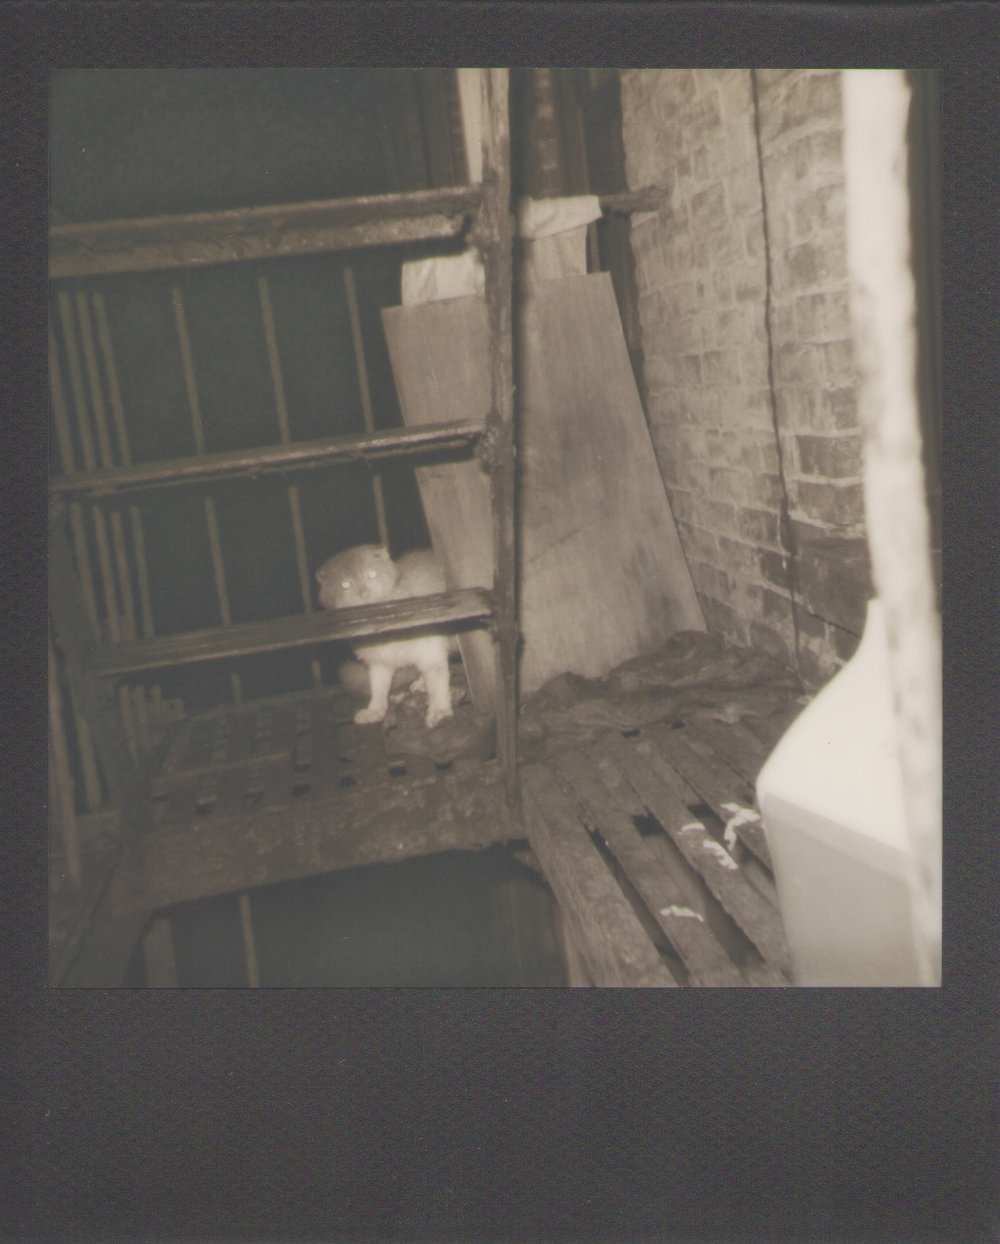 424 quincy. 2012 expired polaroid